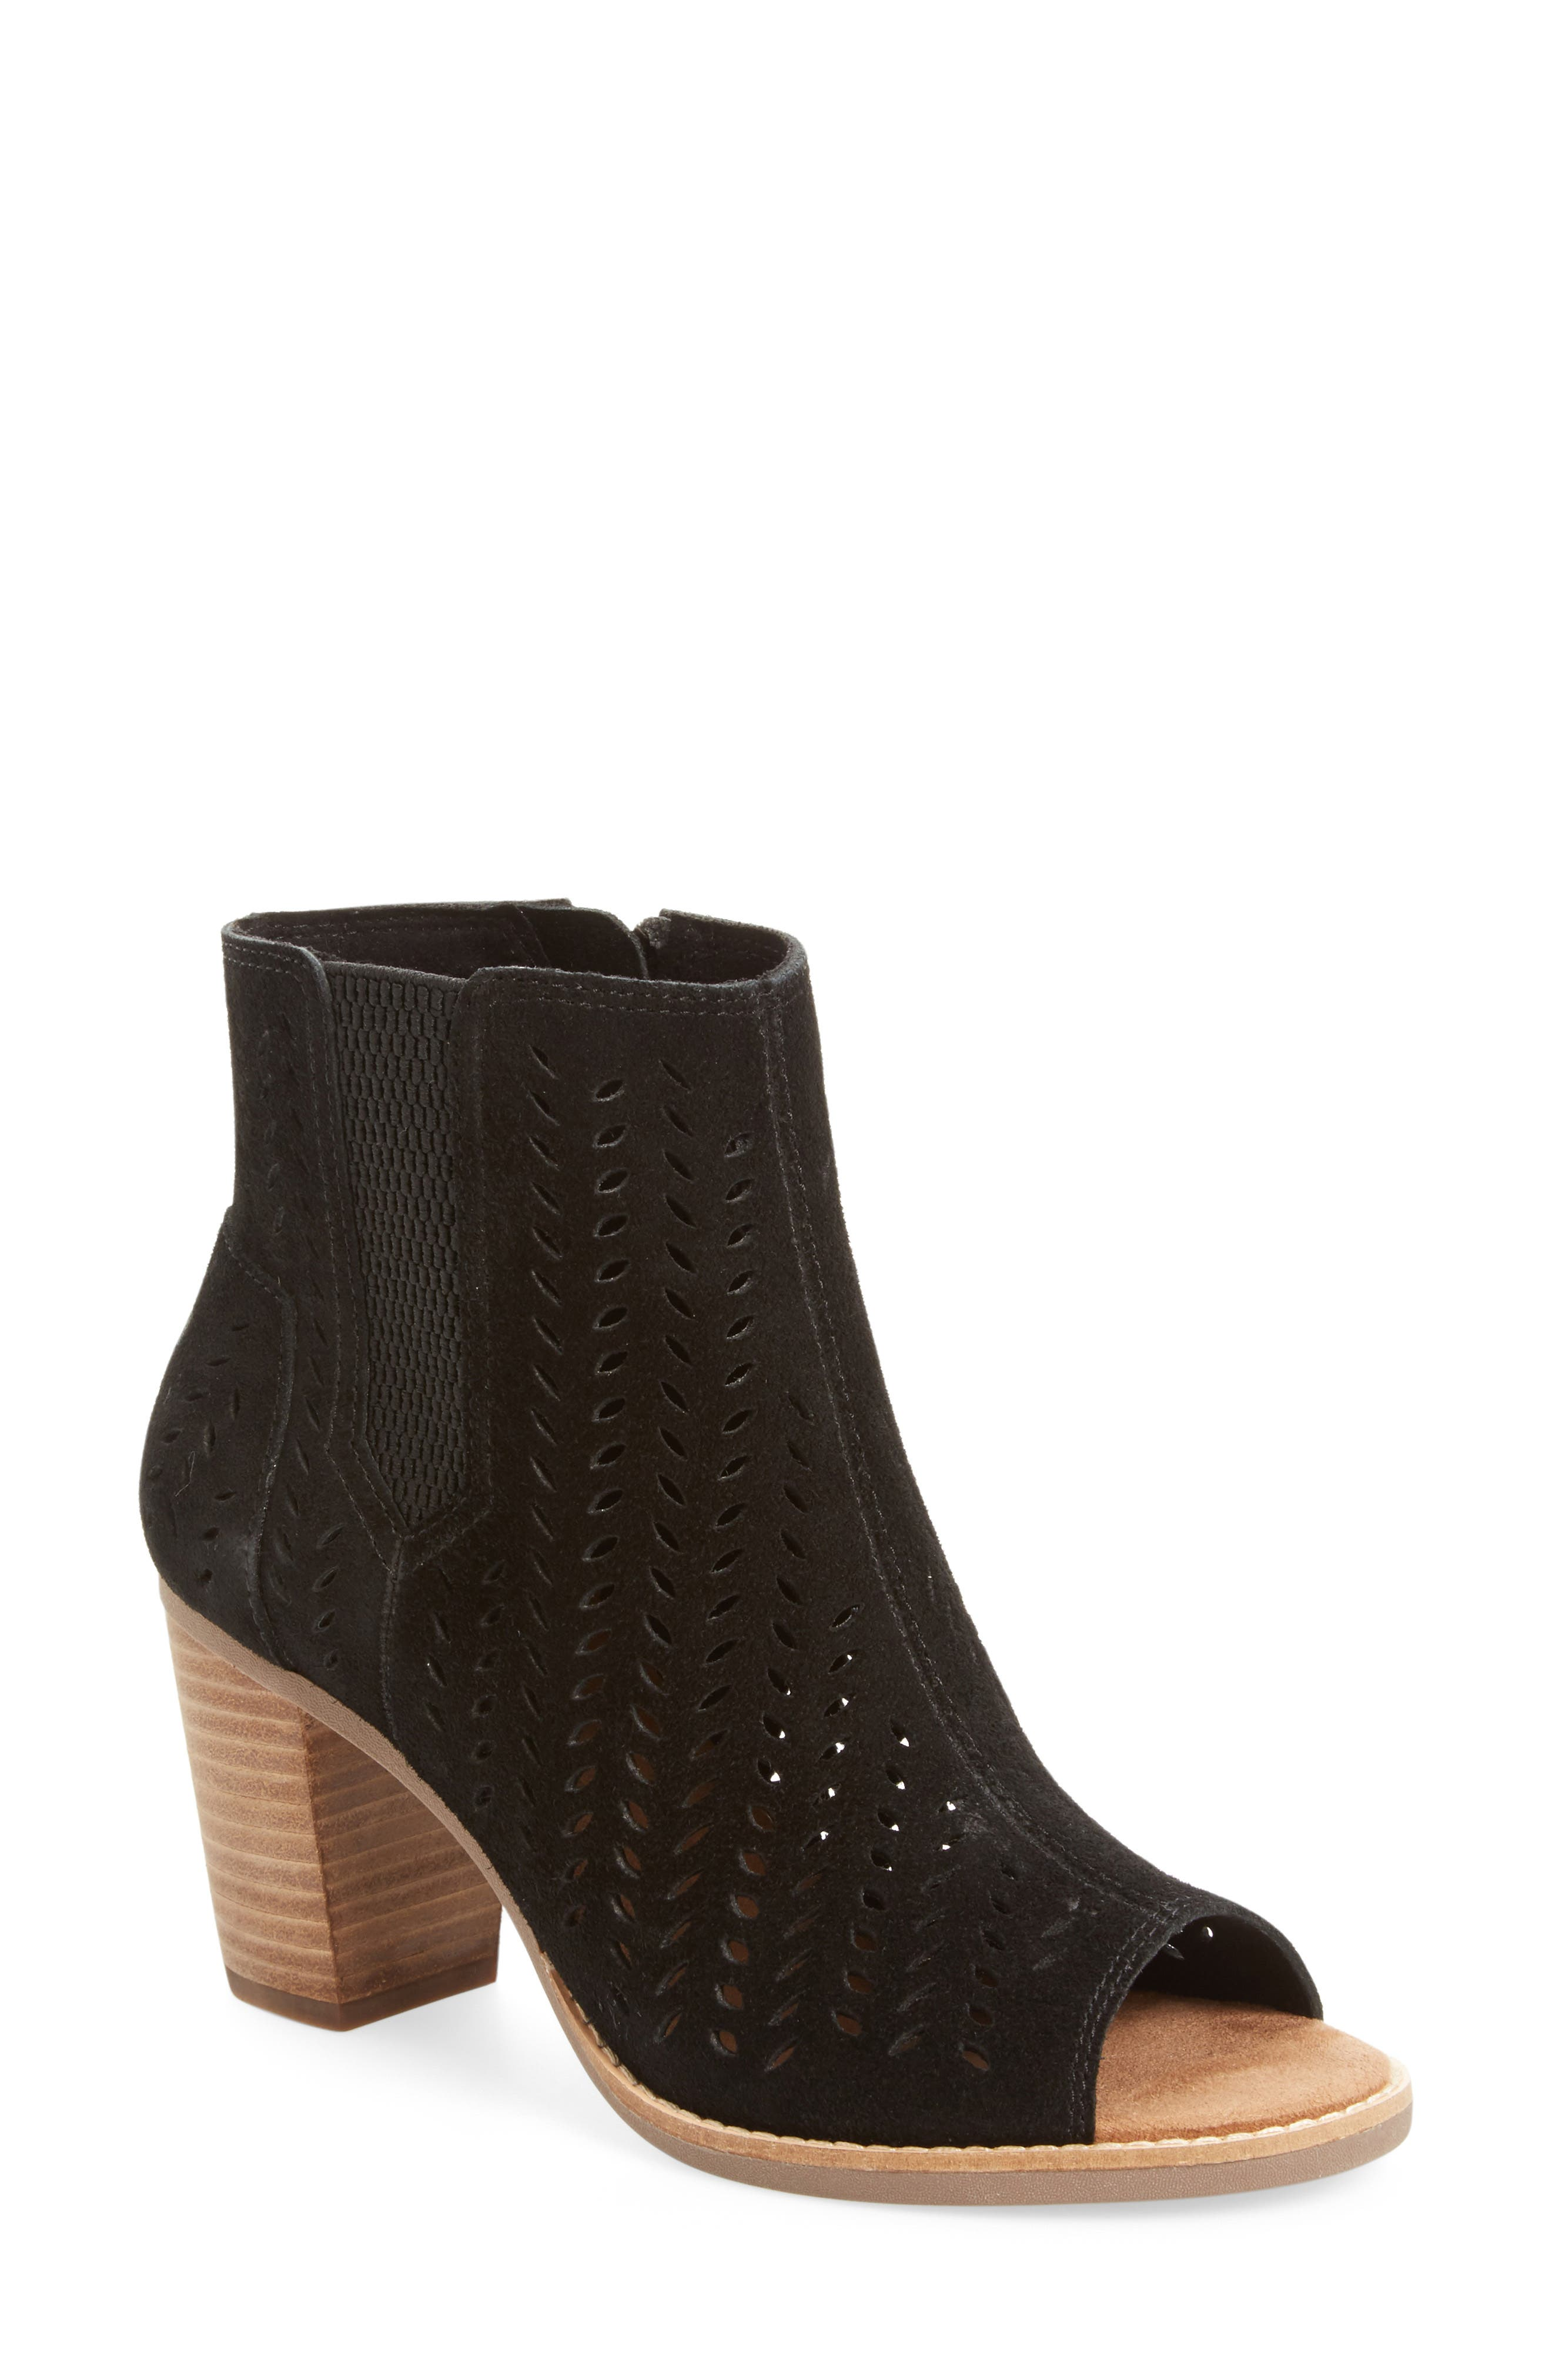 Majorca Perforated Suede Bootie,                             Main thumbnail 1, color,                             001